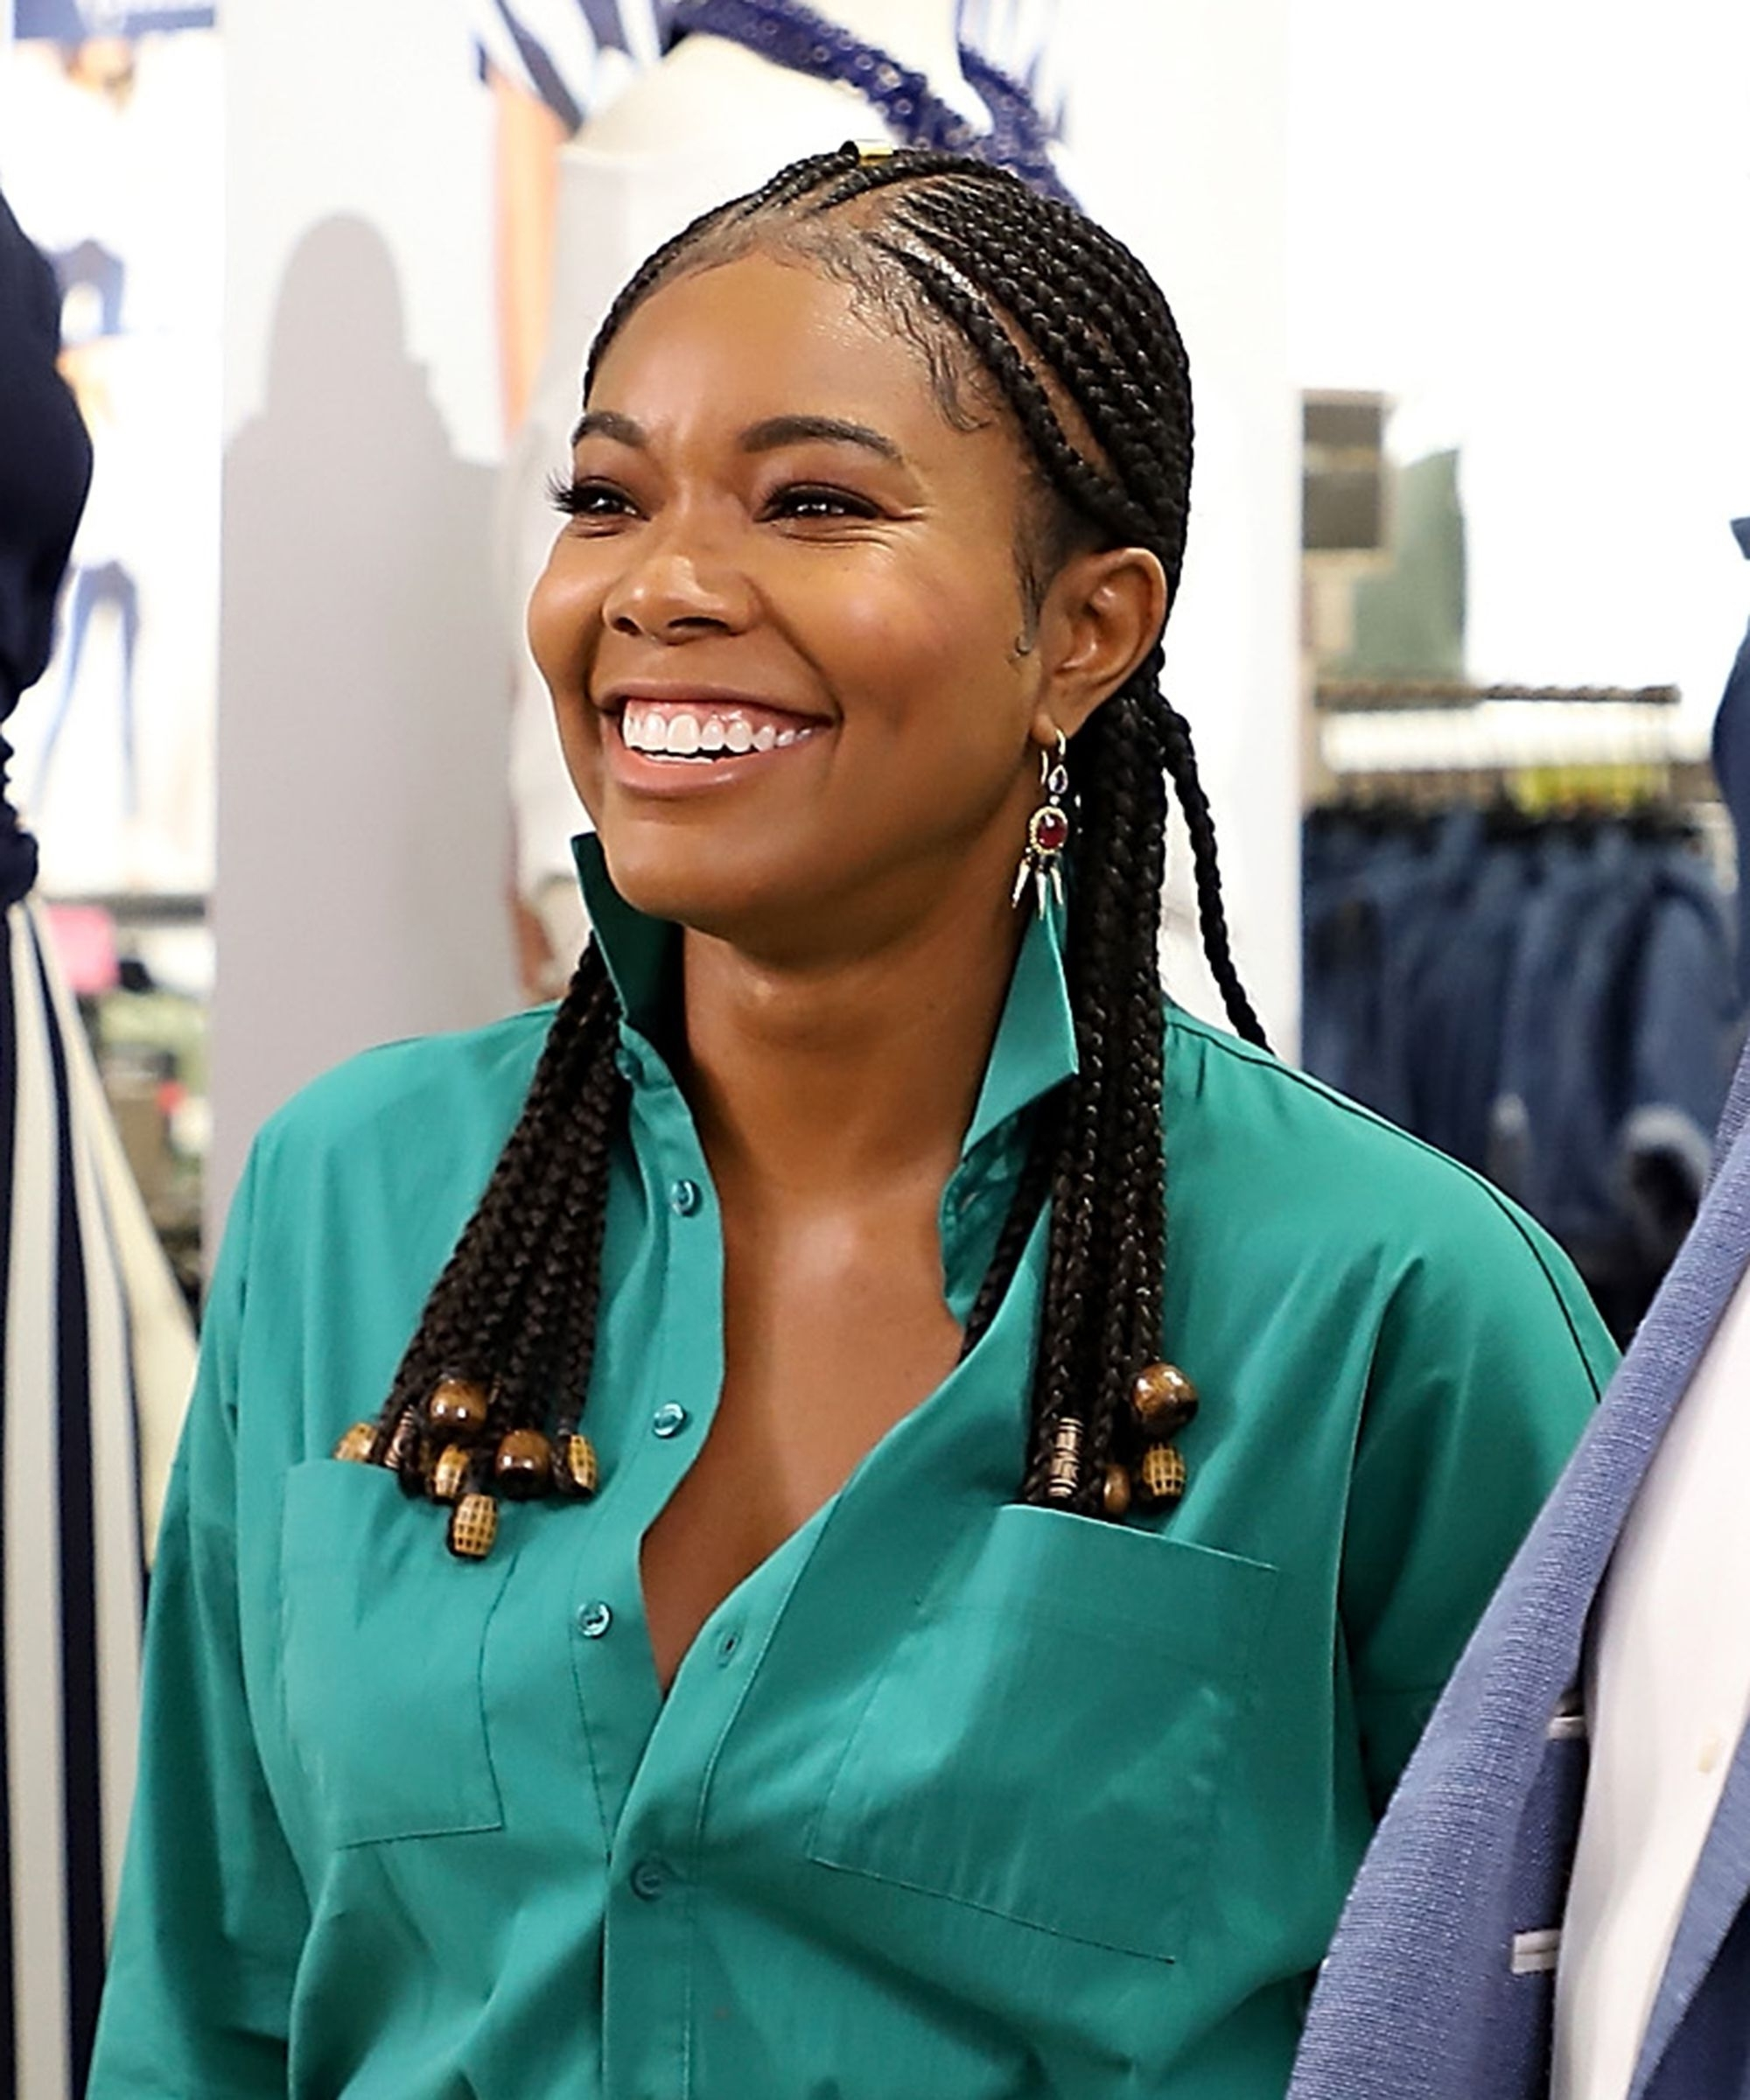 Cute Ways To Wear Beads On Cornrows, Braids, And Locs In Latest Cornrows Hairstyles With Beads (View 6 of 15)